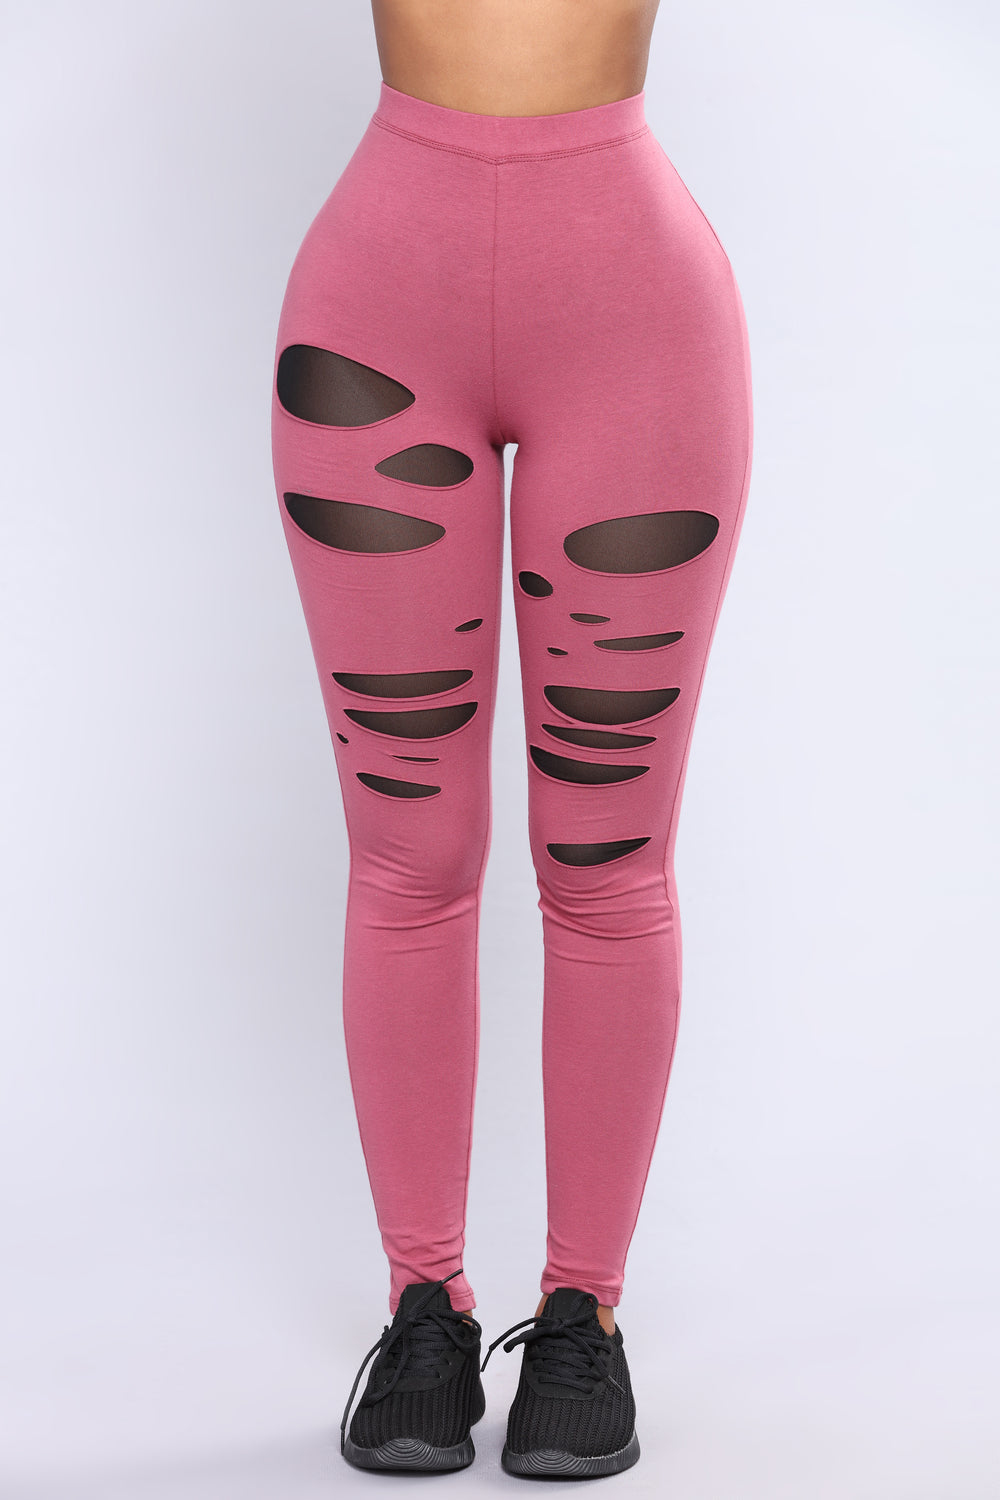 Camille Mesh Cut Out Leggings - Mauve